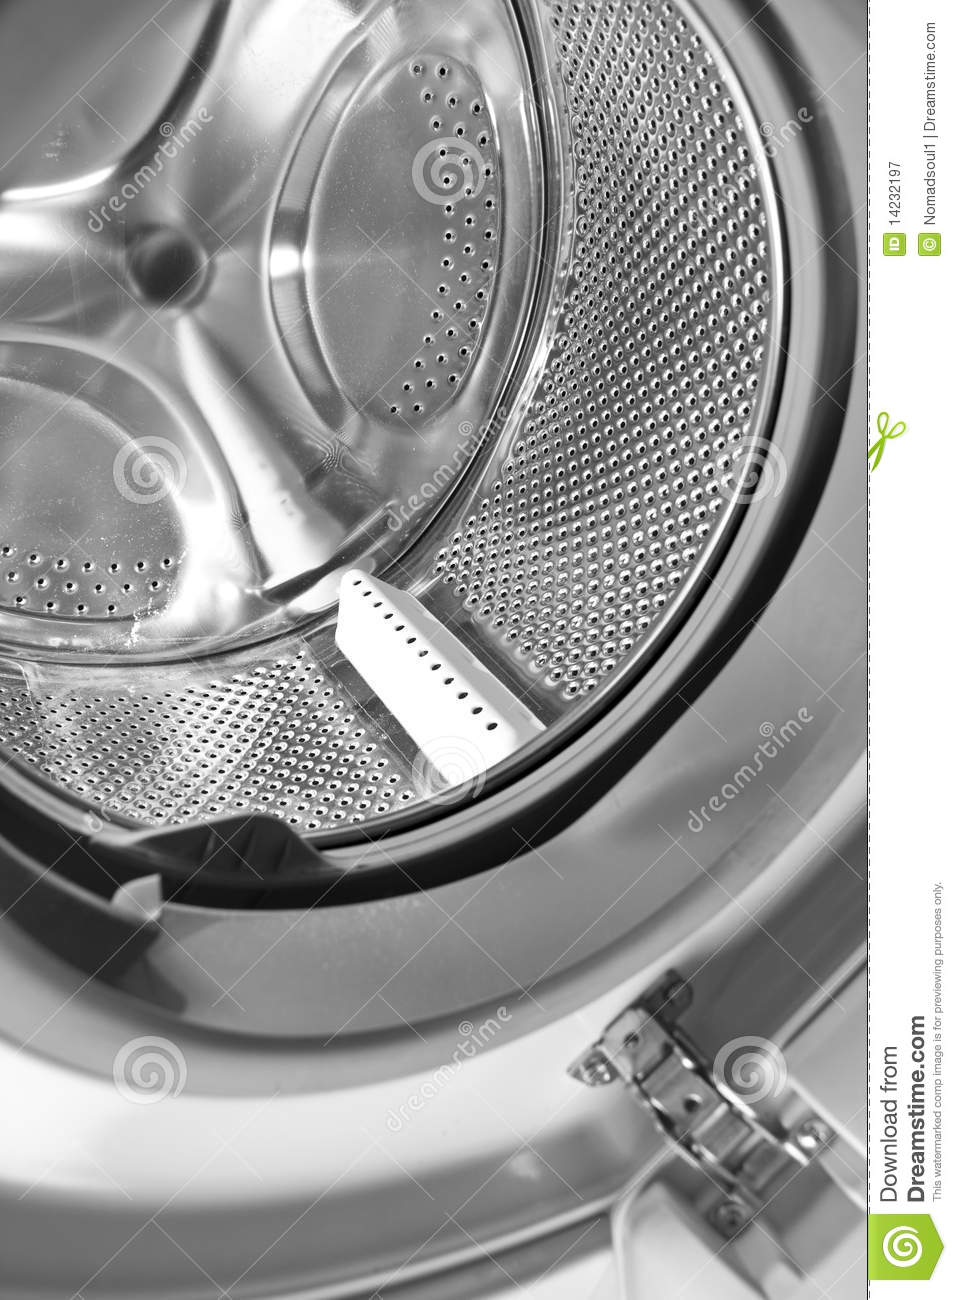 how to clean inside of washing machine drum